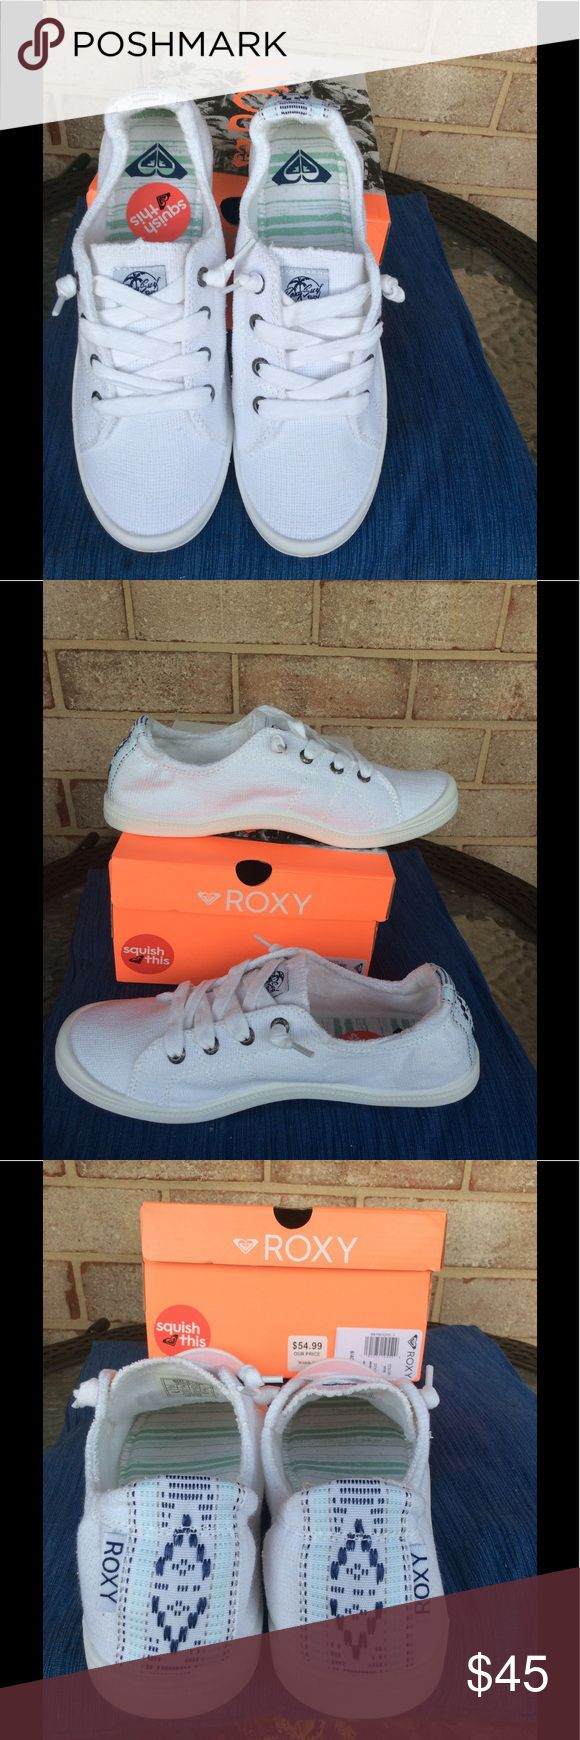 White casual tennis shoes White casual slip on tennis shoe with elastic back. It Has a comfortable cushiony insole. Looks great with dresses, pants, capris or a skirt! Roxy Shoes Sneakers